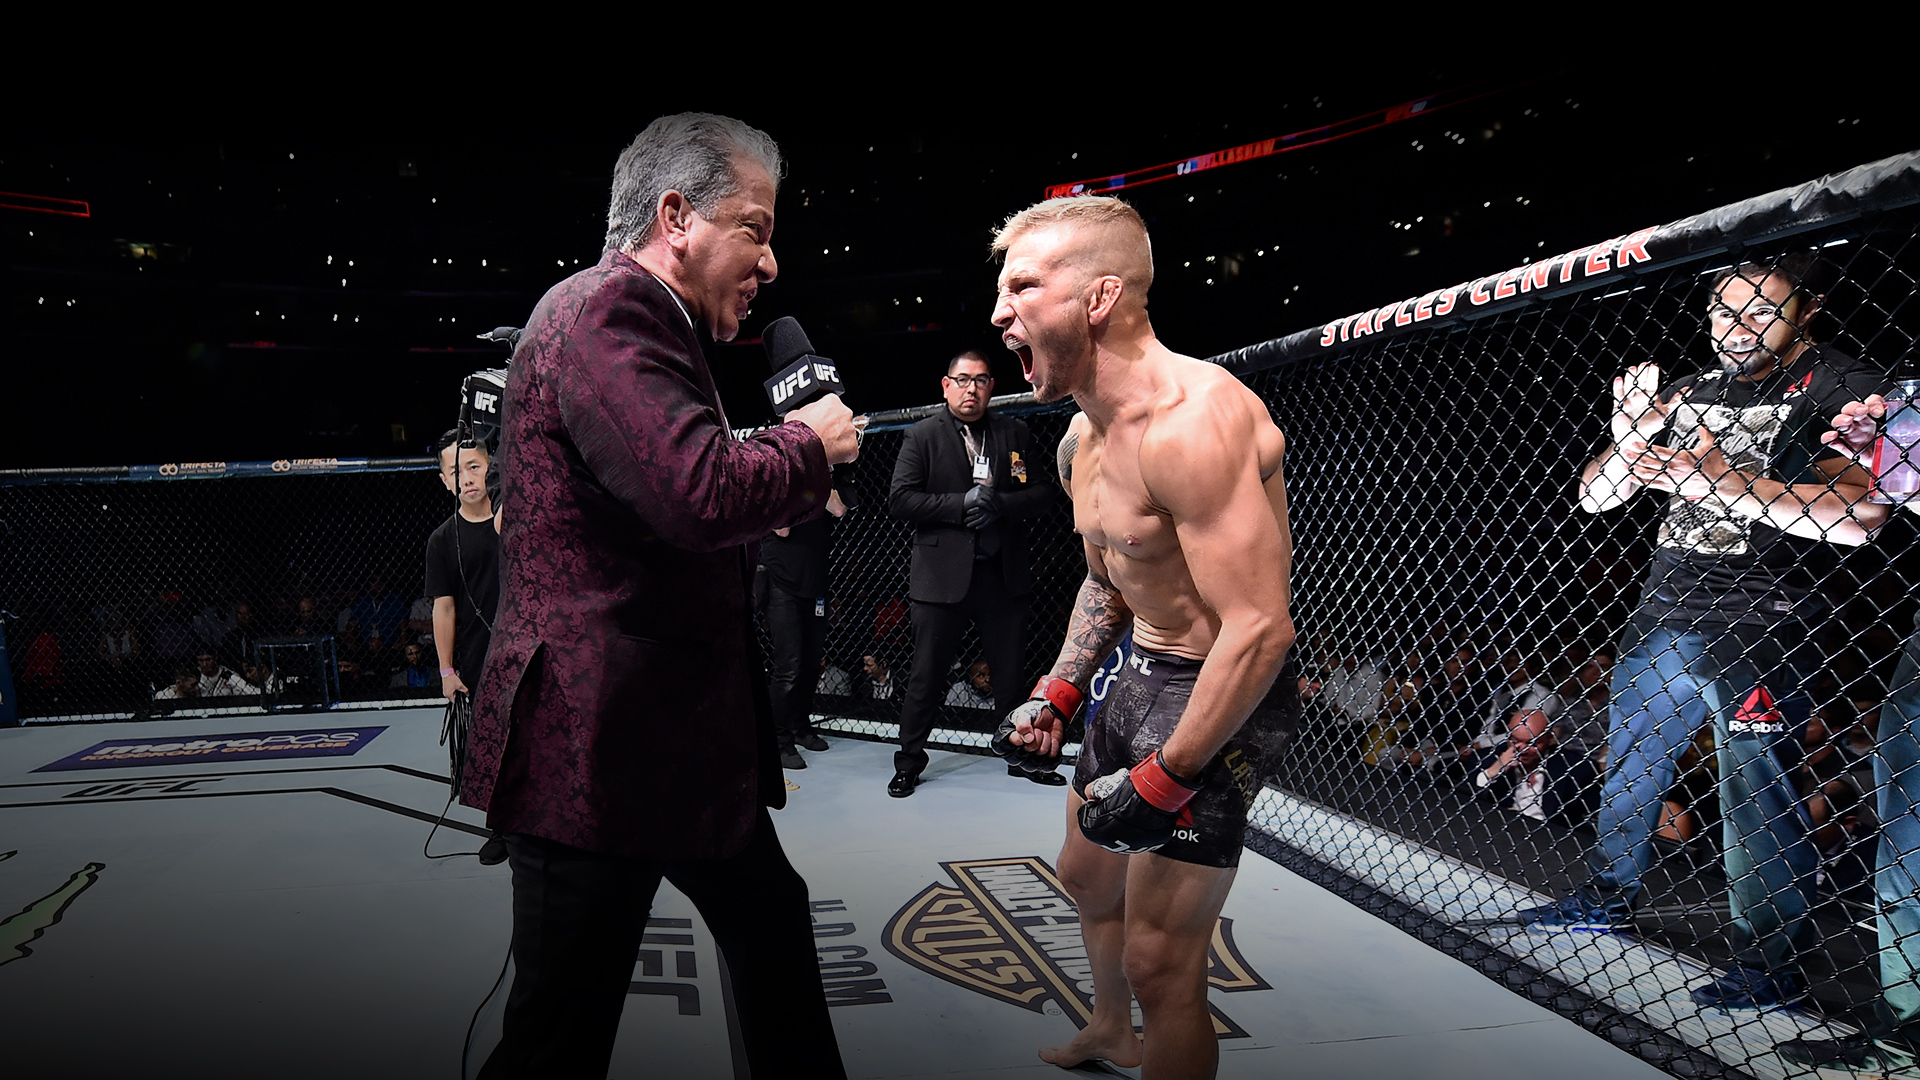 TJ Dillashaw is introduced by Bruce Buffer prior to his UFC bantamweight championship fight against Cody Garbrandt during the UFC 227 event inside Staples Center on August 4, 2018 in Los Angeles, California. (Photo by Jeff Bottari/Zuffa LLC)